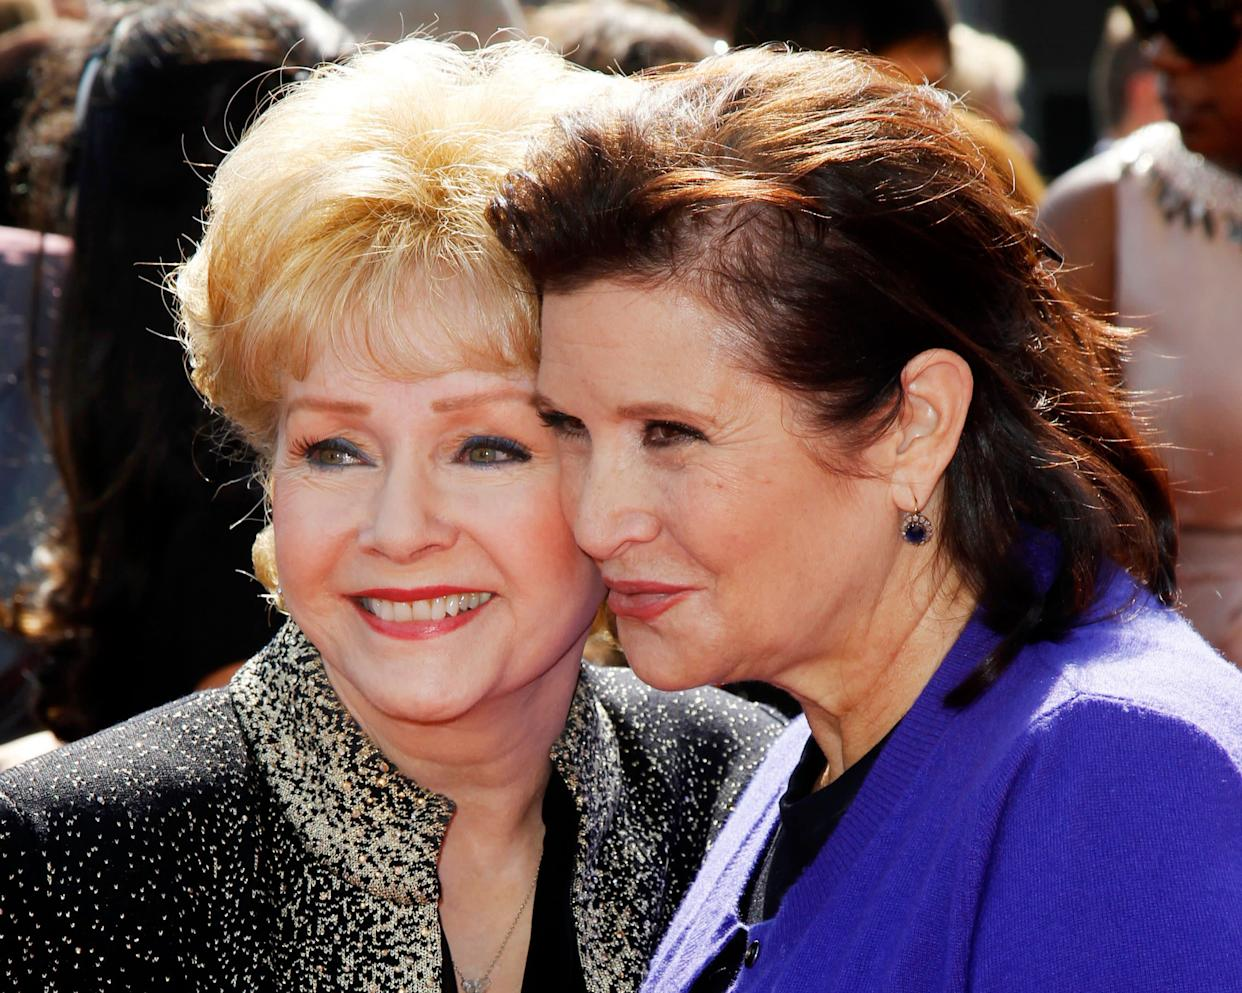 Debbie Reynolds and Carrie Fisher arrive at the Primetime Creative Arts Emmy Awards in Los Angeles on Sep.10, 2011.